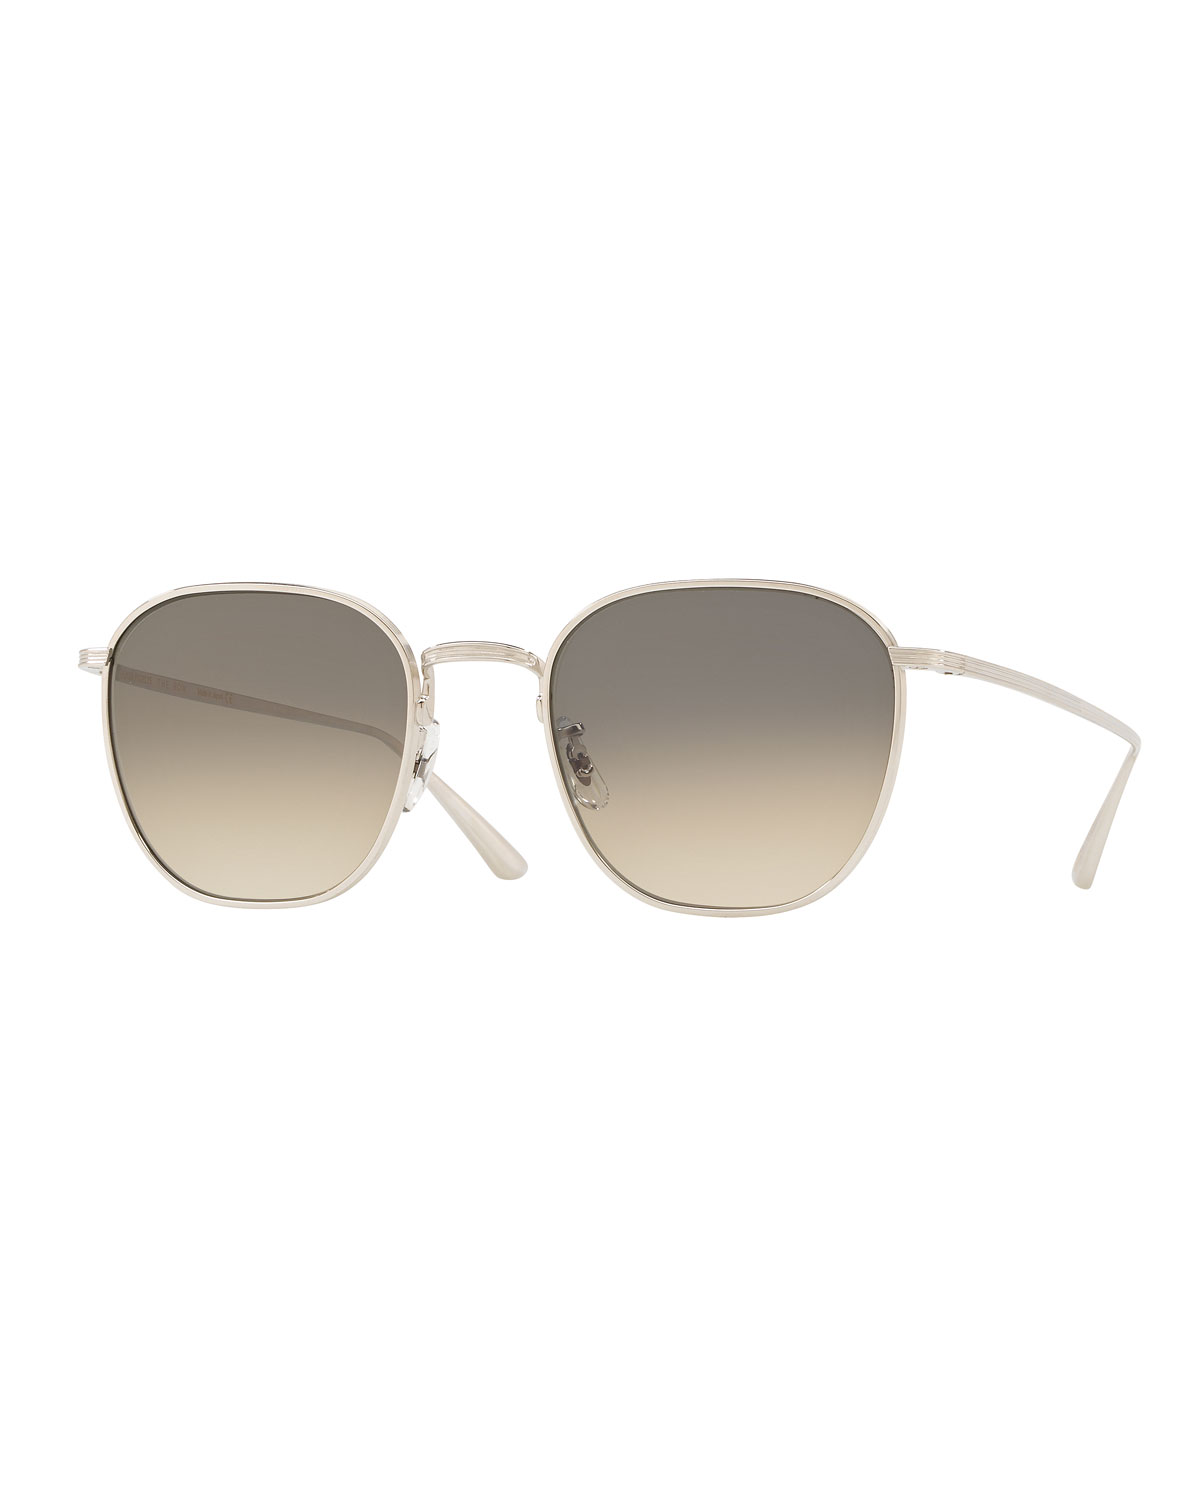 Oliver Peoples The Row Men's Board Meeting Square Gradient Titanium Sunglasses